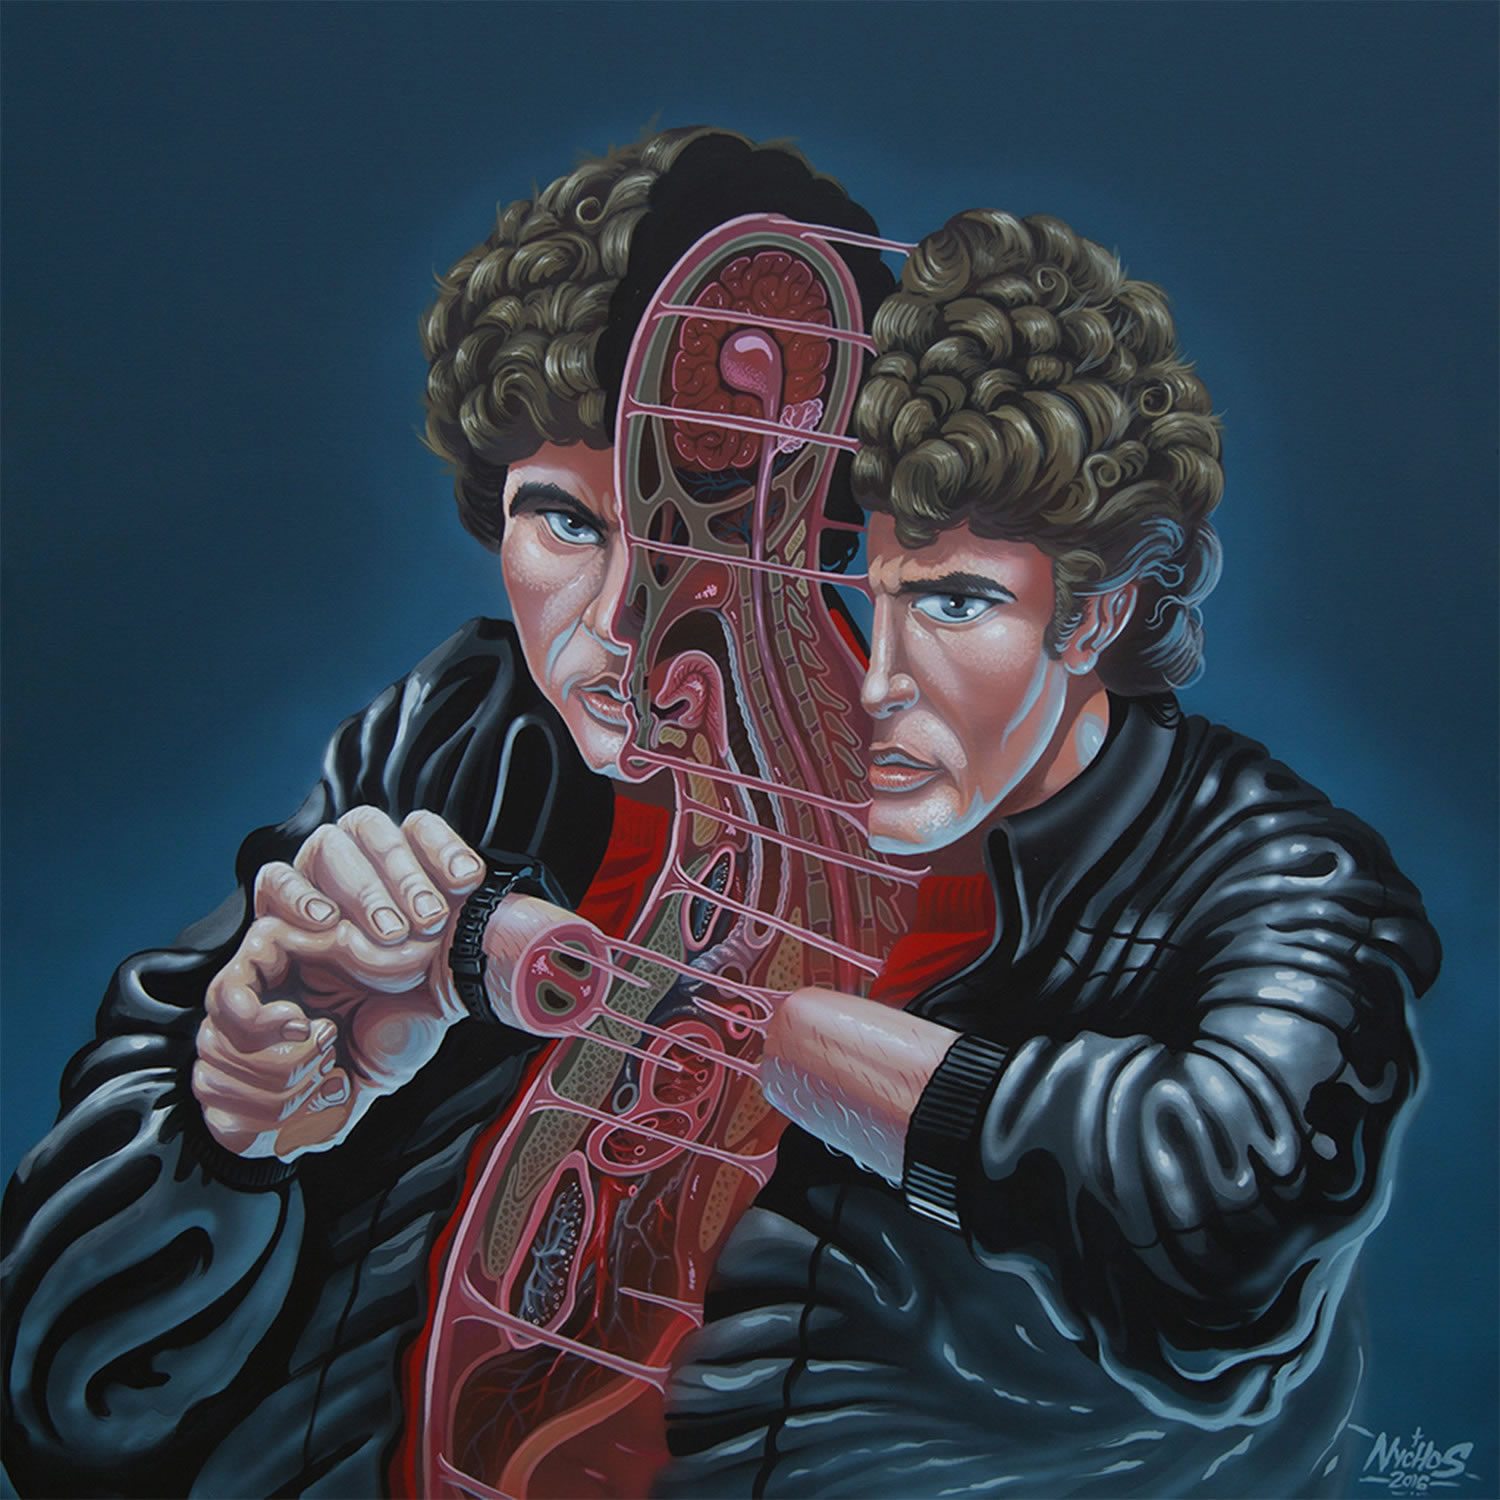 knight rider, dissected, painting